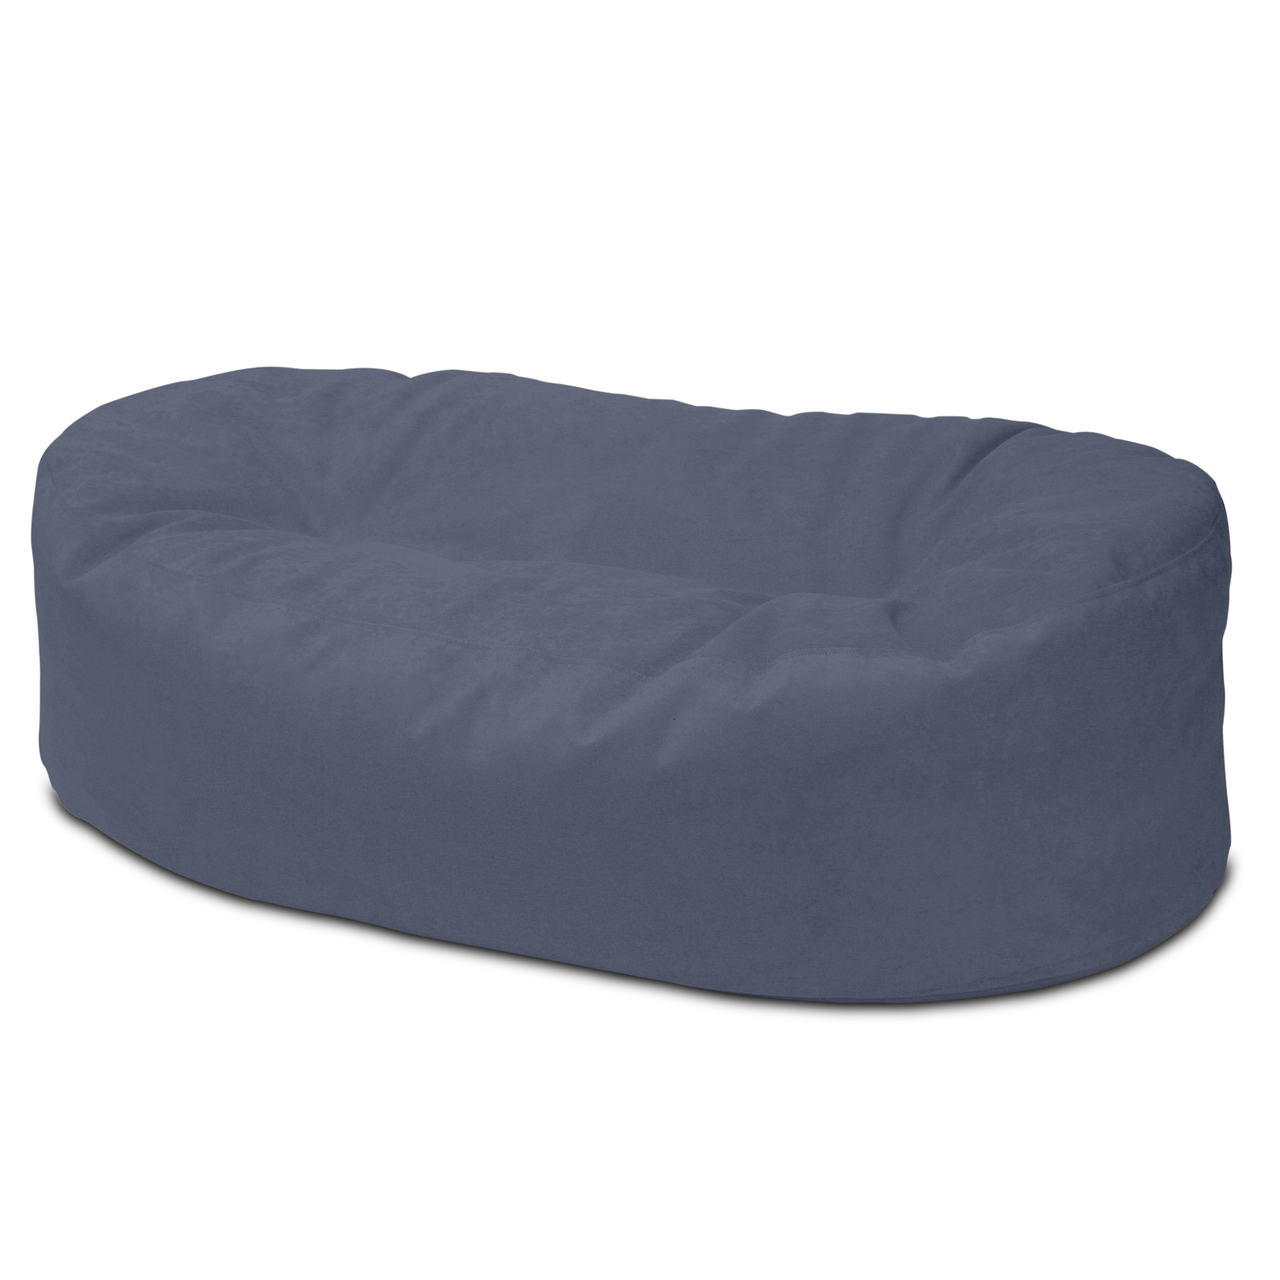 Warwick Macrosuede 2m Couch in storm